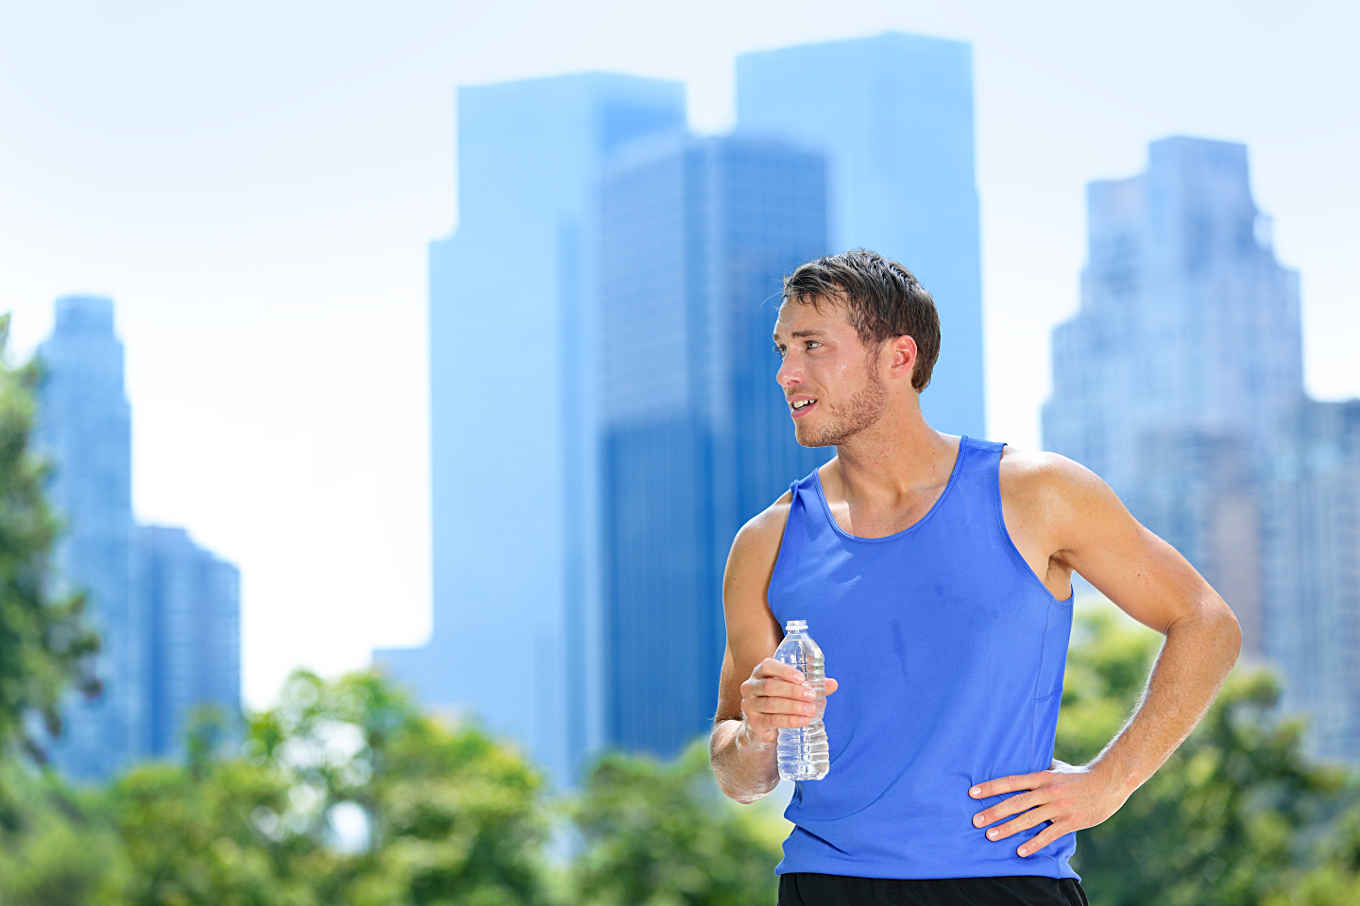 Sweat & Summer, How To Make Sure Your Electrolytes Stay Balanced